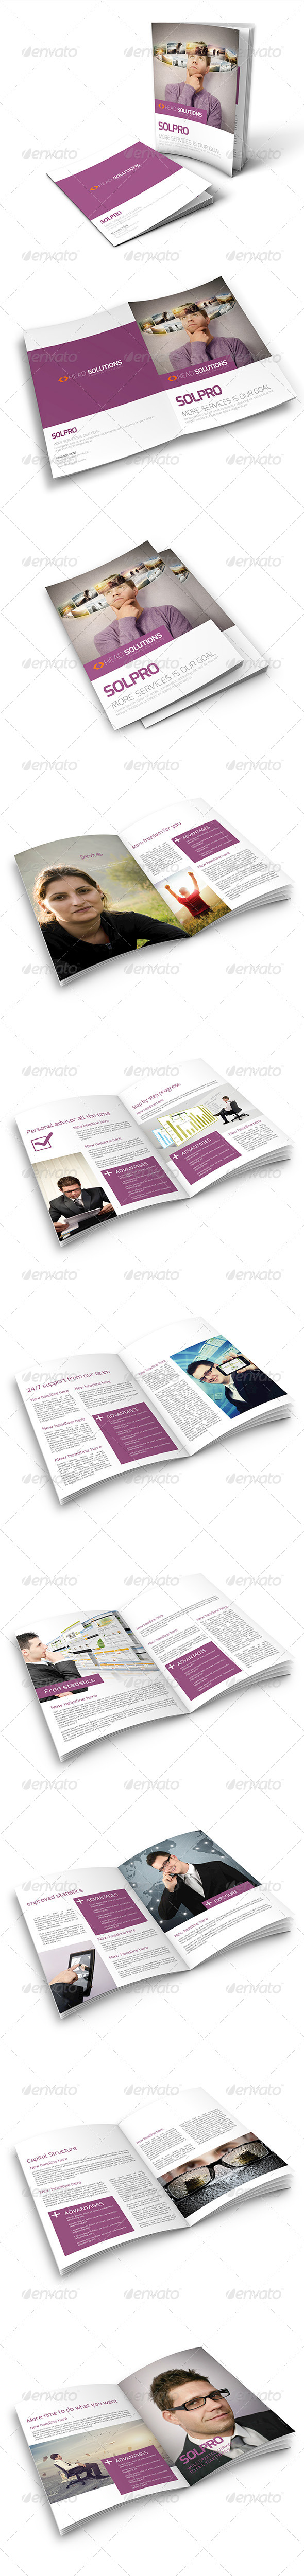 GraphicRiver Clean Corporate Service Brochure 6572989